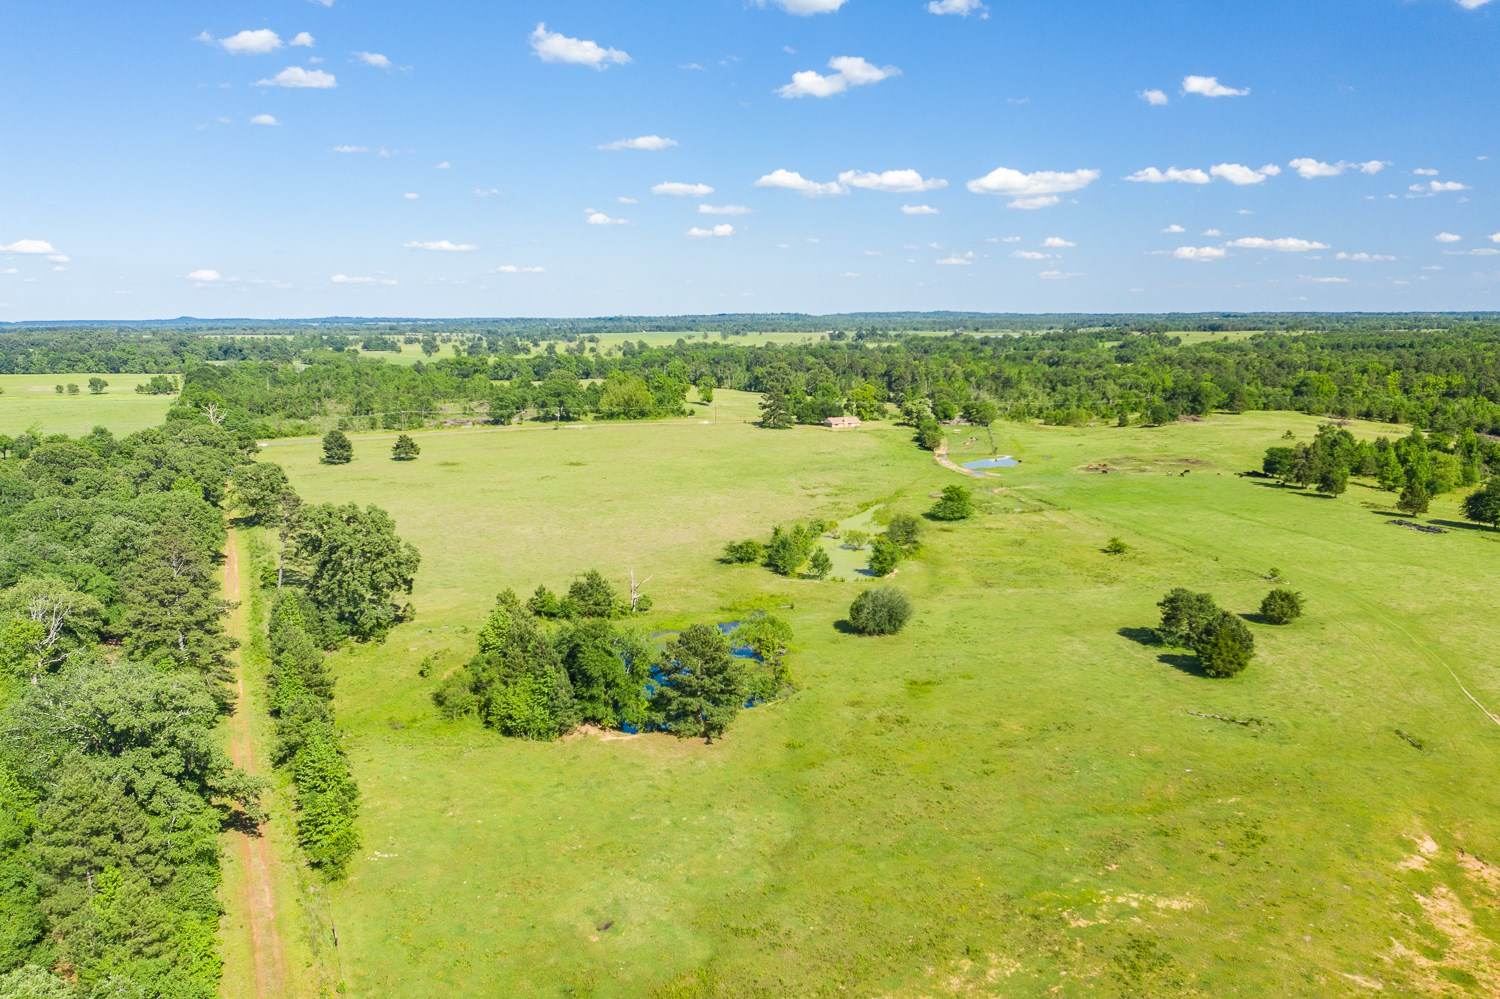 East Texas Land For Sale In Smith County Near Winona & Tyler